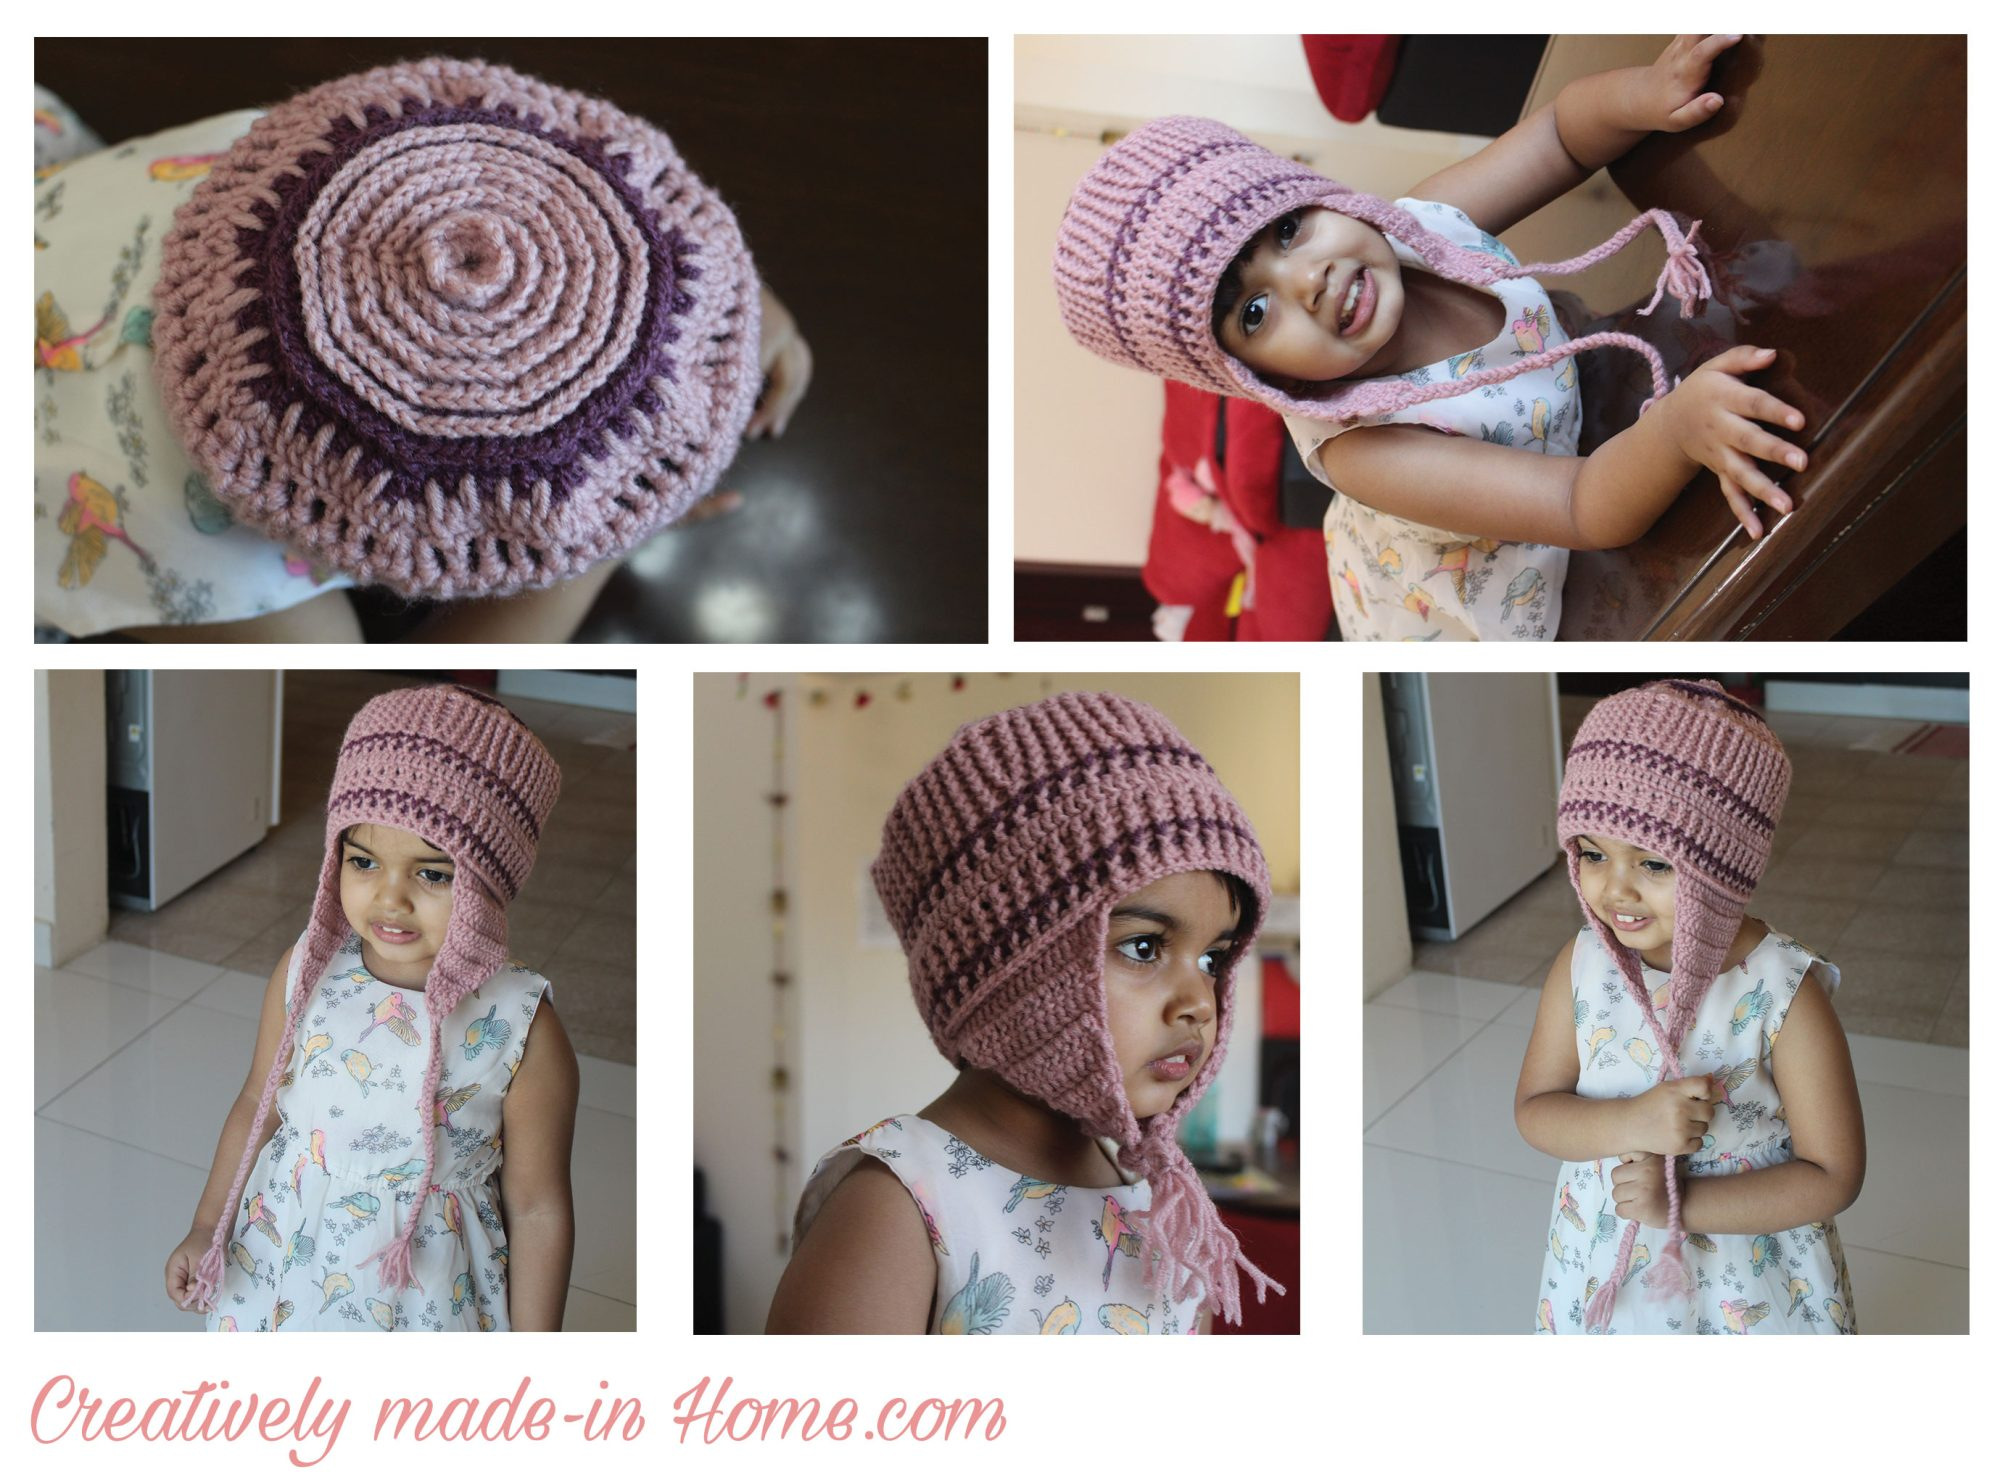 How To Crochet Ear Flap Cap For Baby Creatively Made In Home